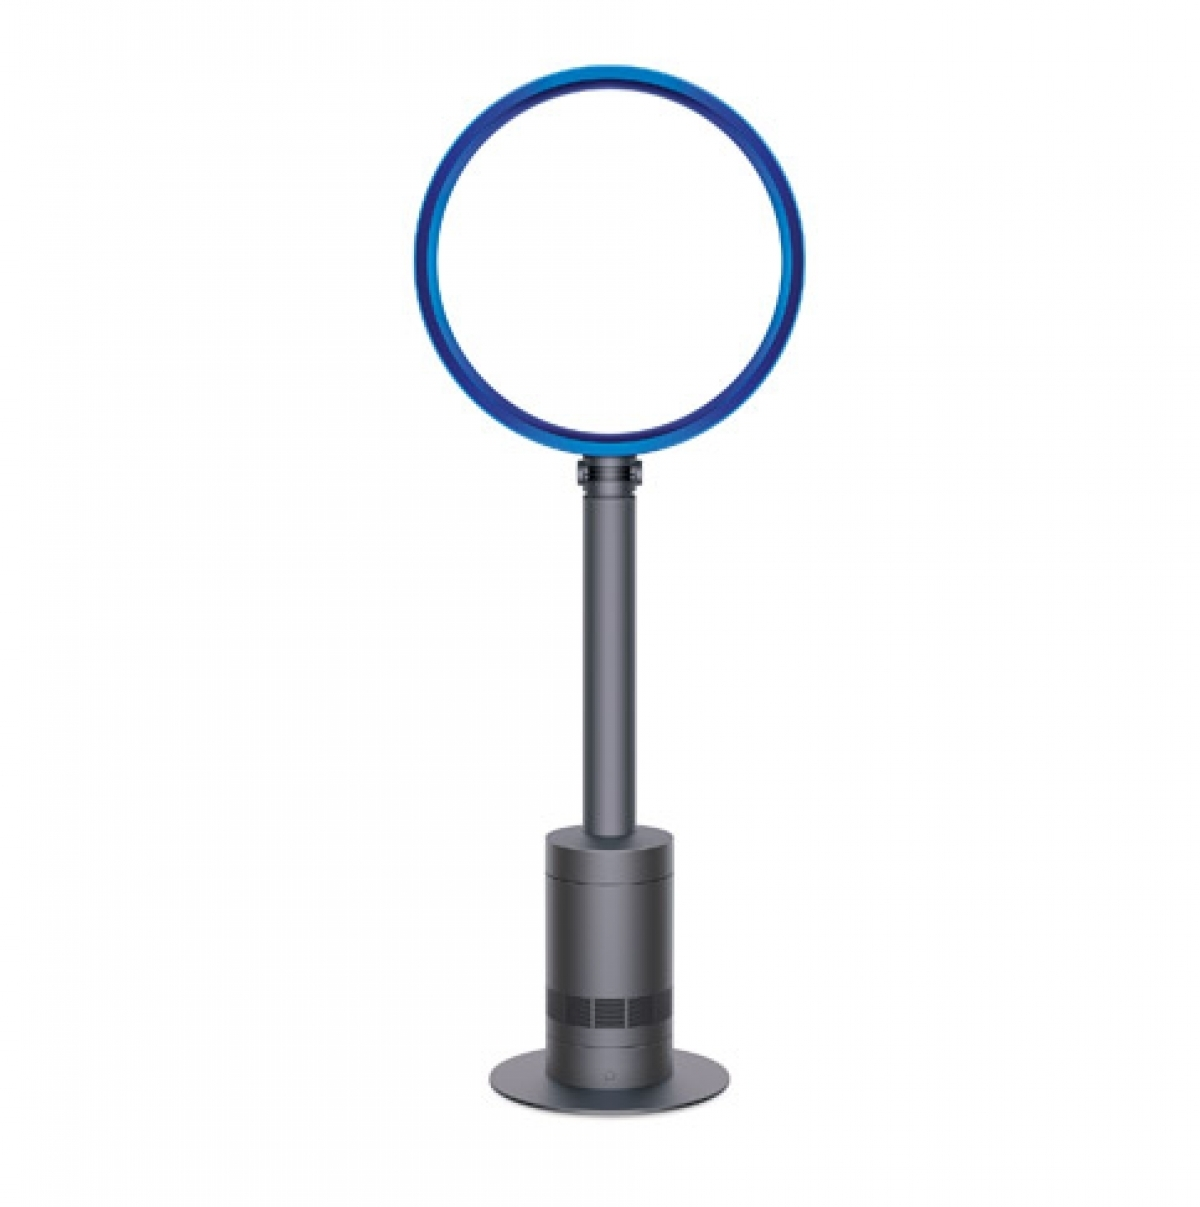 Dyson AM08 16 Pedestal Fan PNJ Beauty Shop